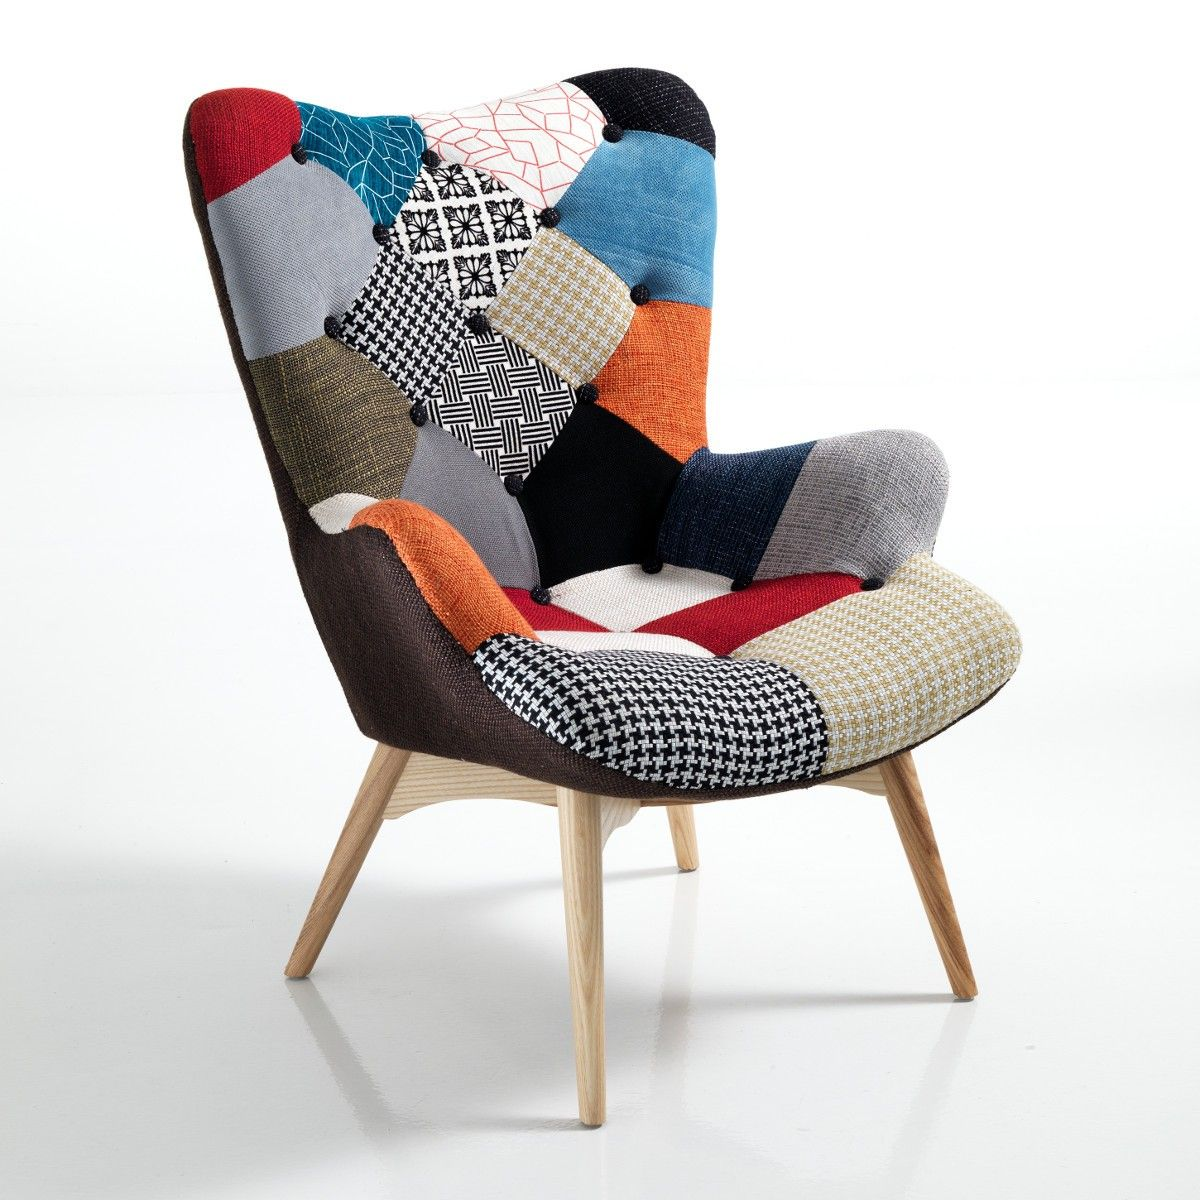 Poltroncina patchwork colormix in tessuto multicolor e gambe in massello - Poltrone da camera ...